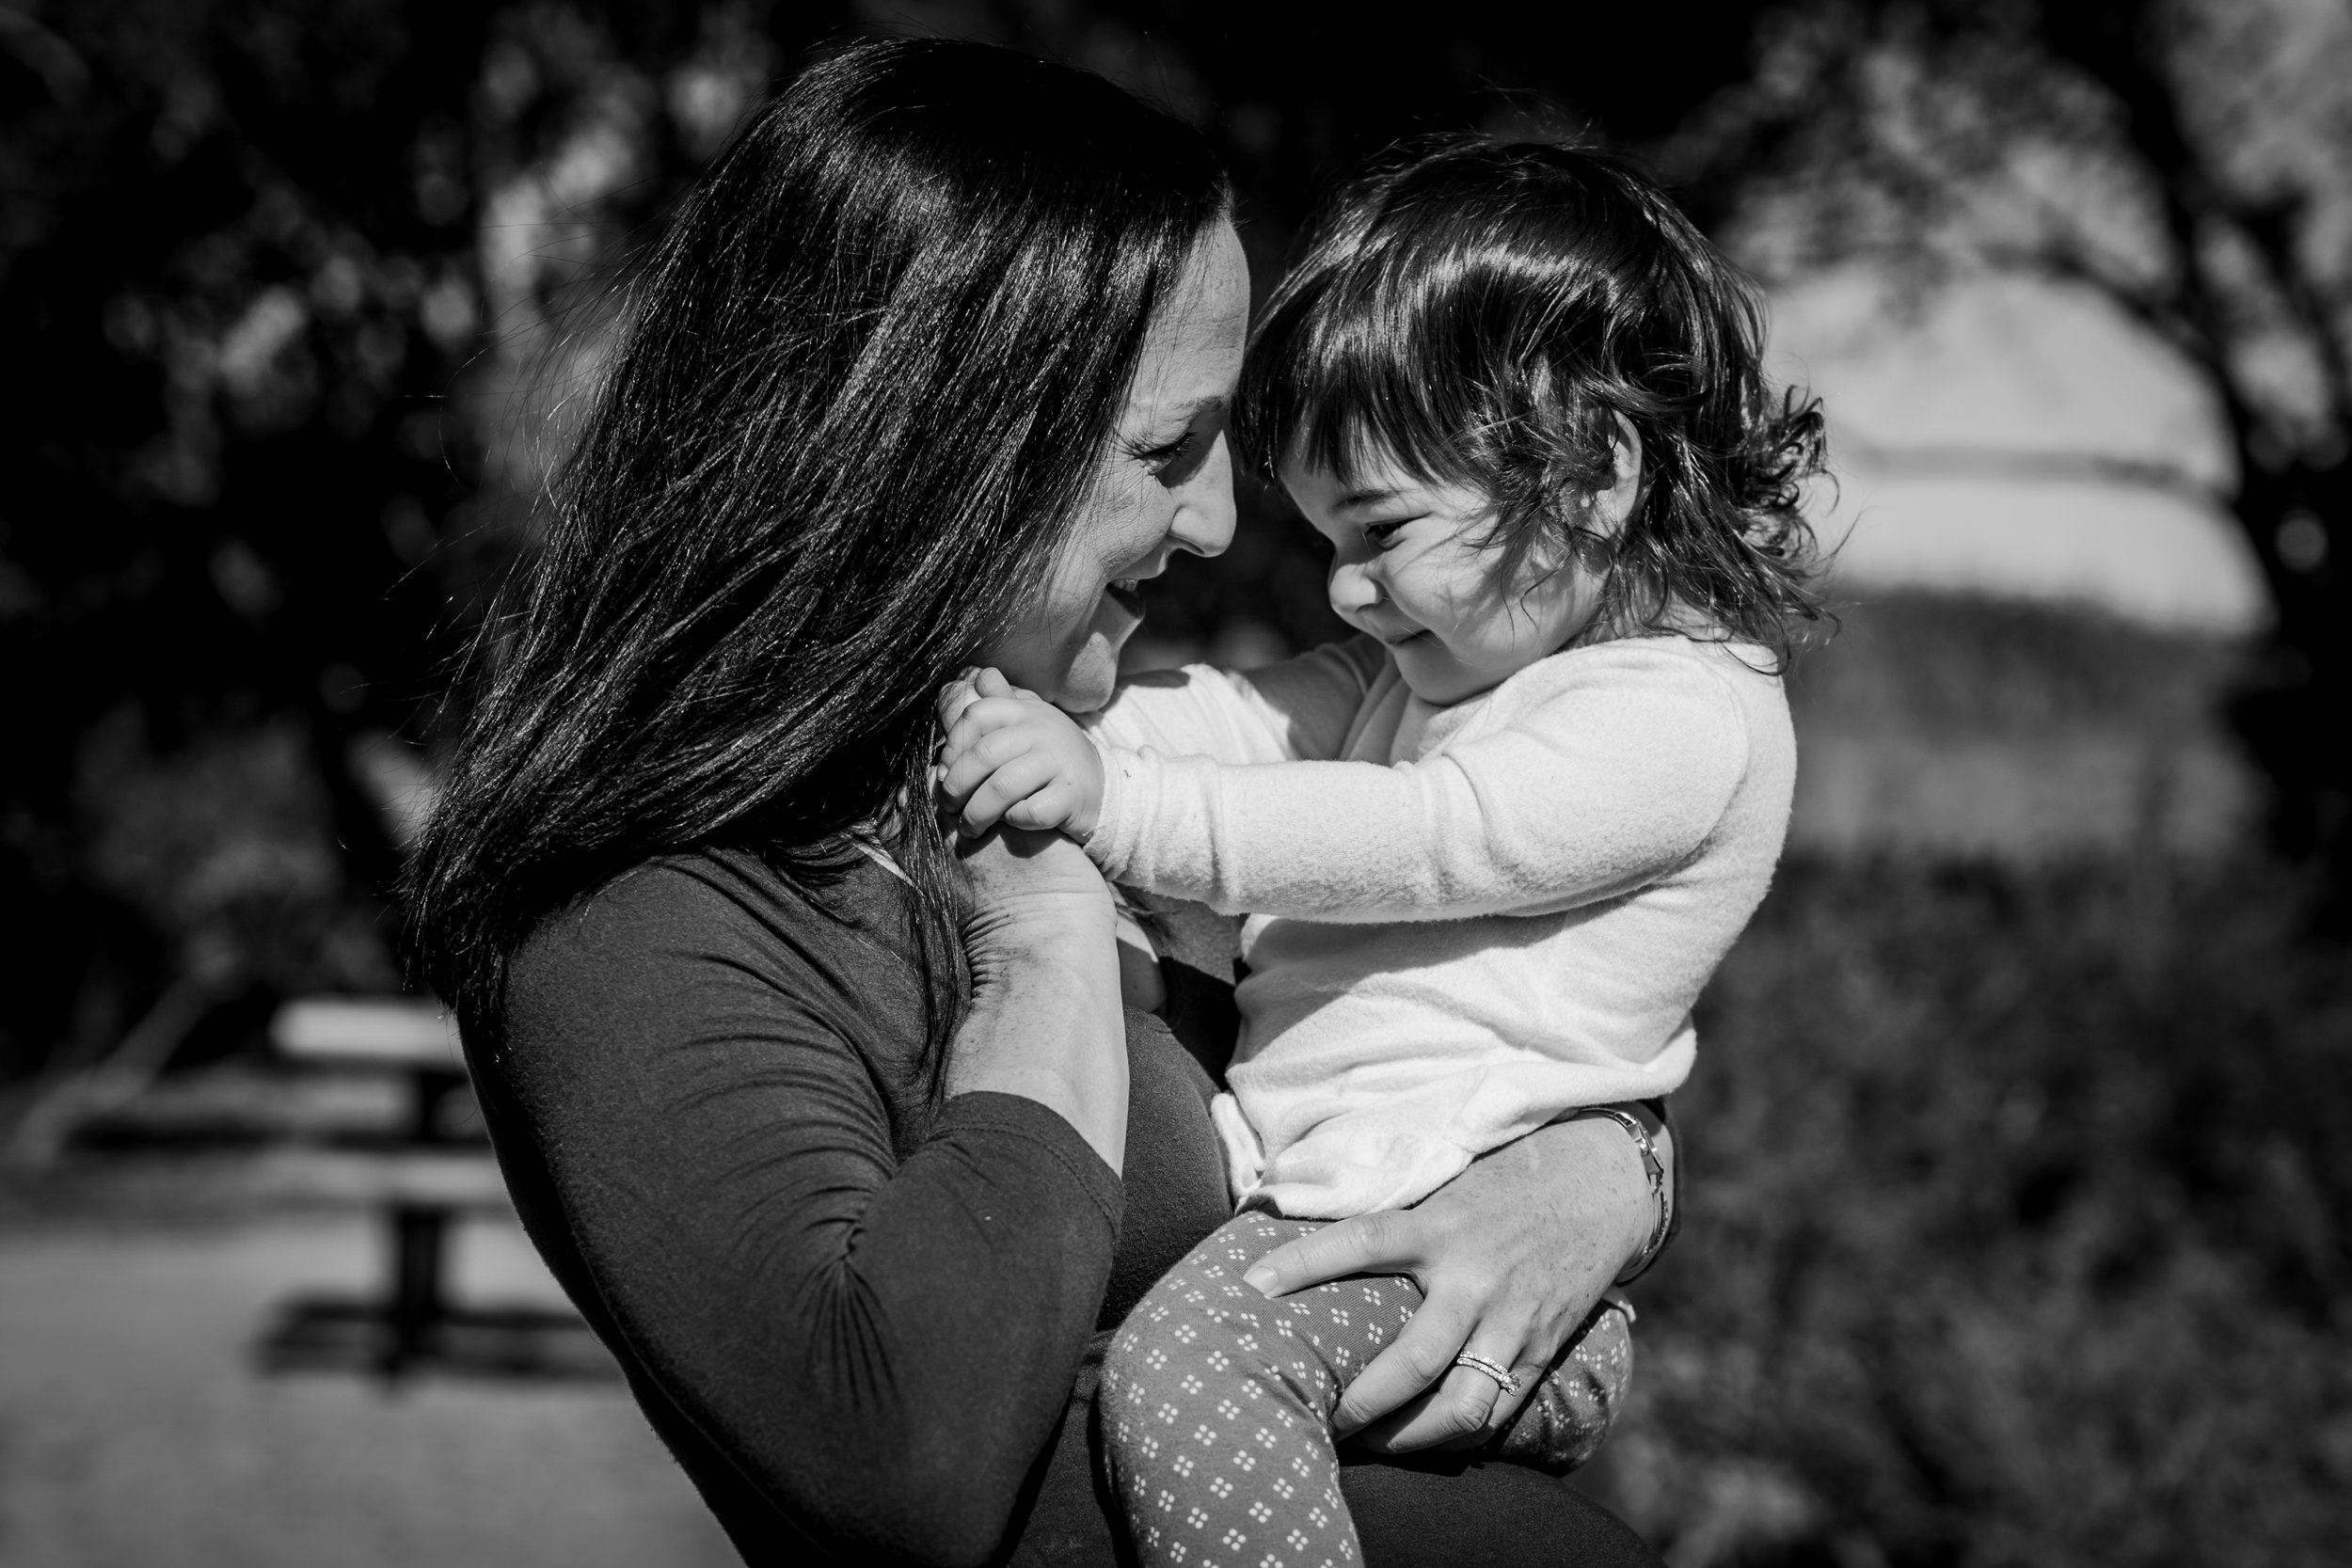 Orange County family photographer. Portrait of pregnant mom as she holds and plays with her sweet daughter during maternity photo shoot at Quail Hill Trailhead Irvine